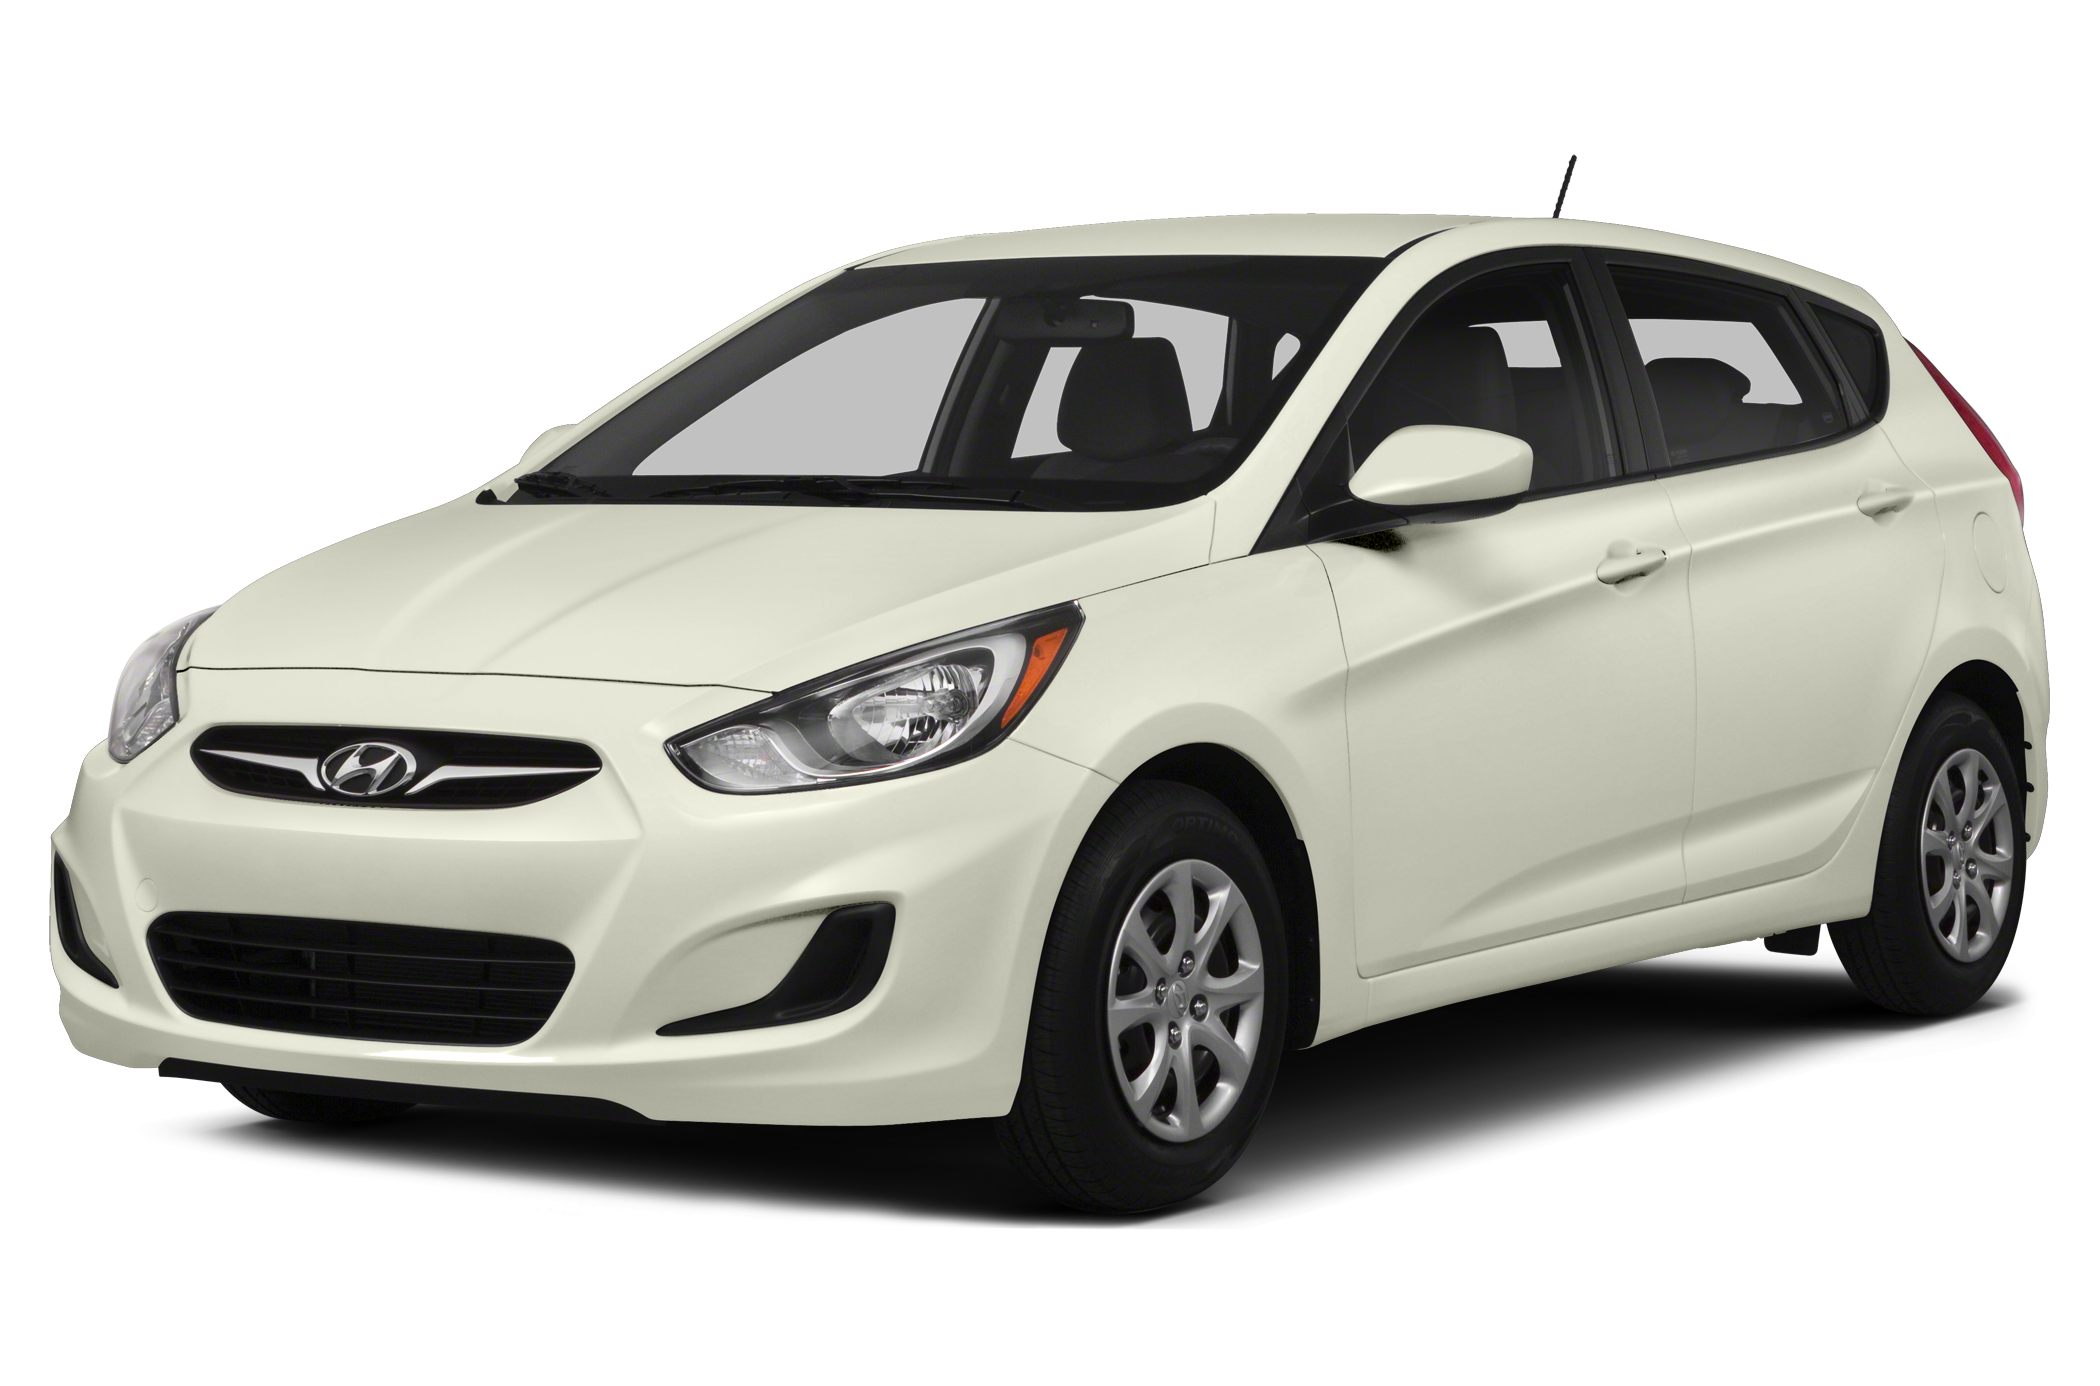 2014 Hyundai Accent GS Hatchback for sale in Fall River for $17,185 with 0 miles